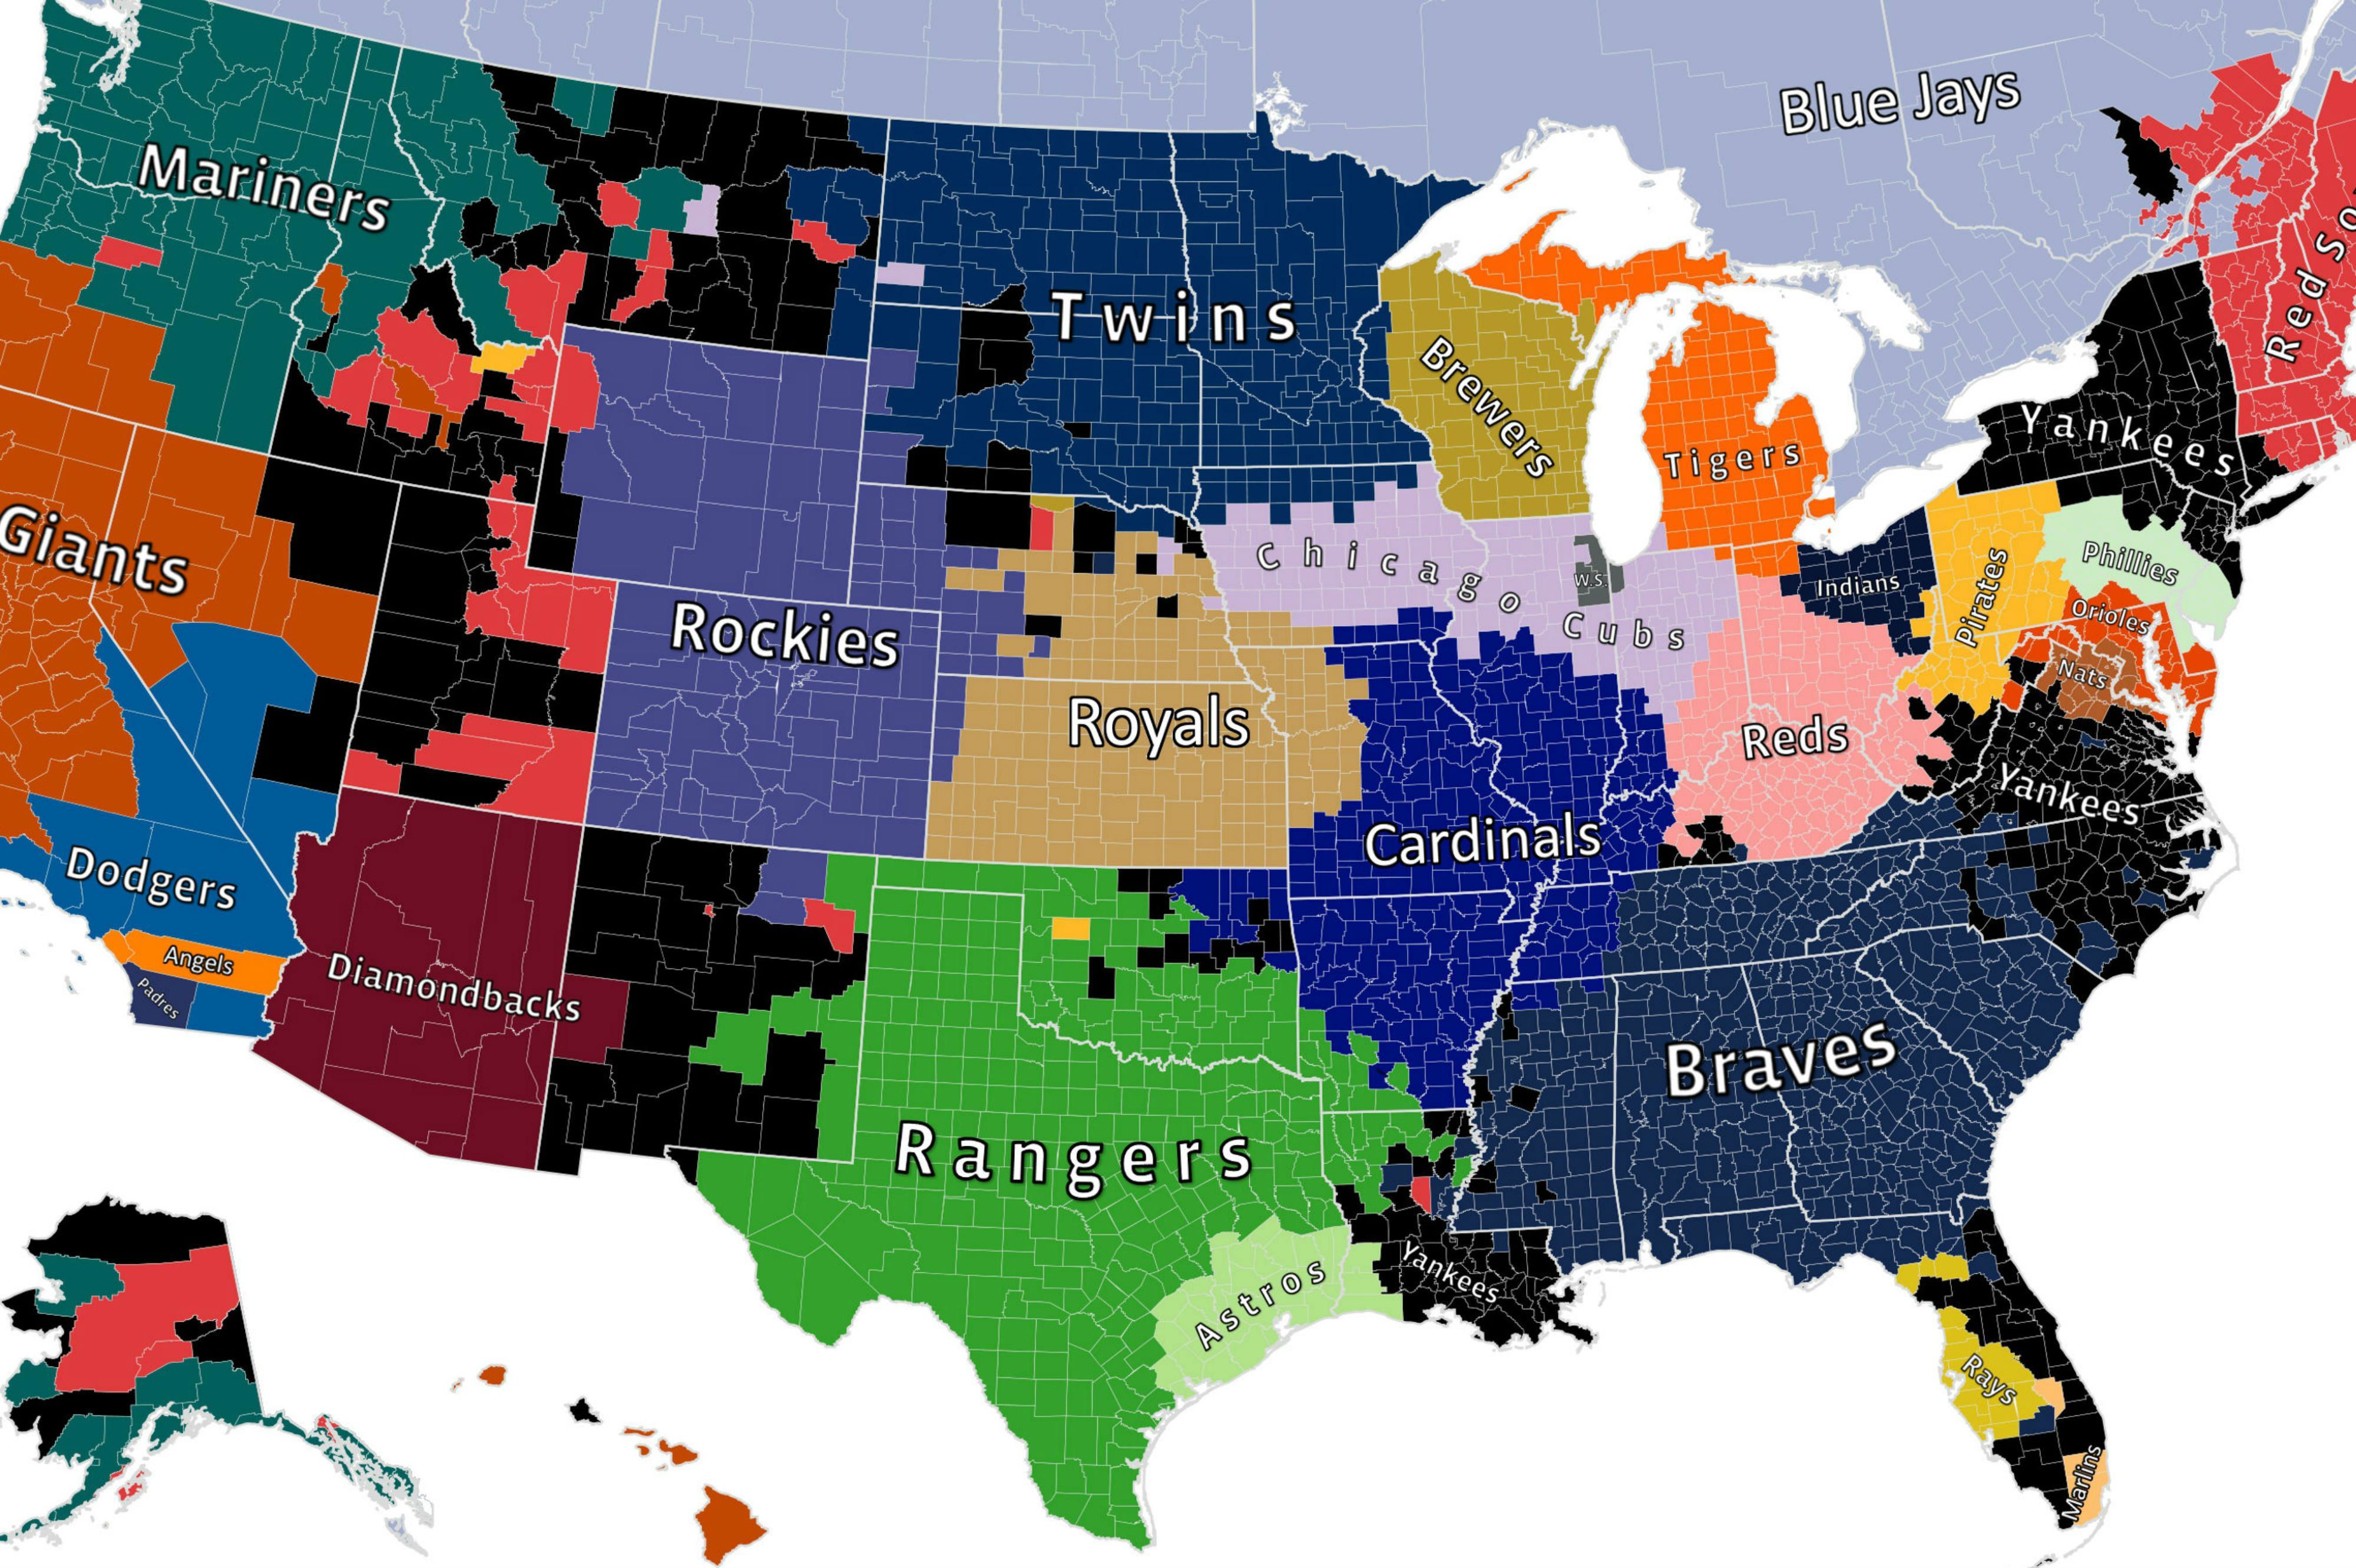 Facebooks MLB Fan Map Reminds Us Yankees Fans Are Everywhere - Us map nfl teams